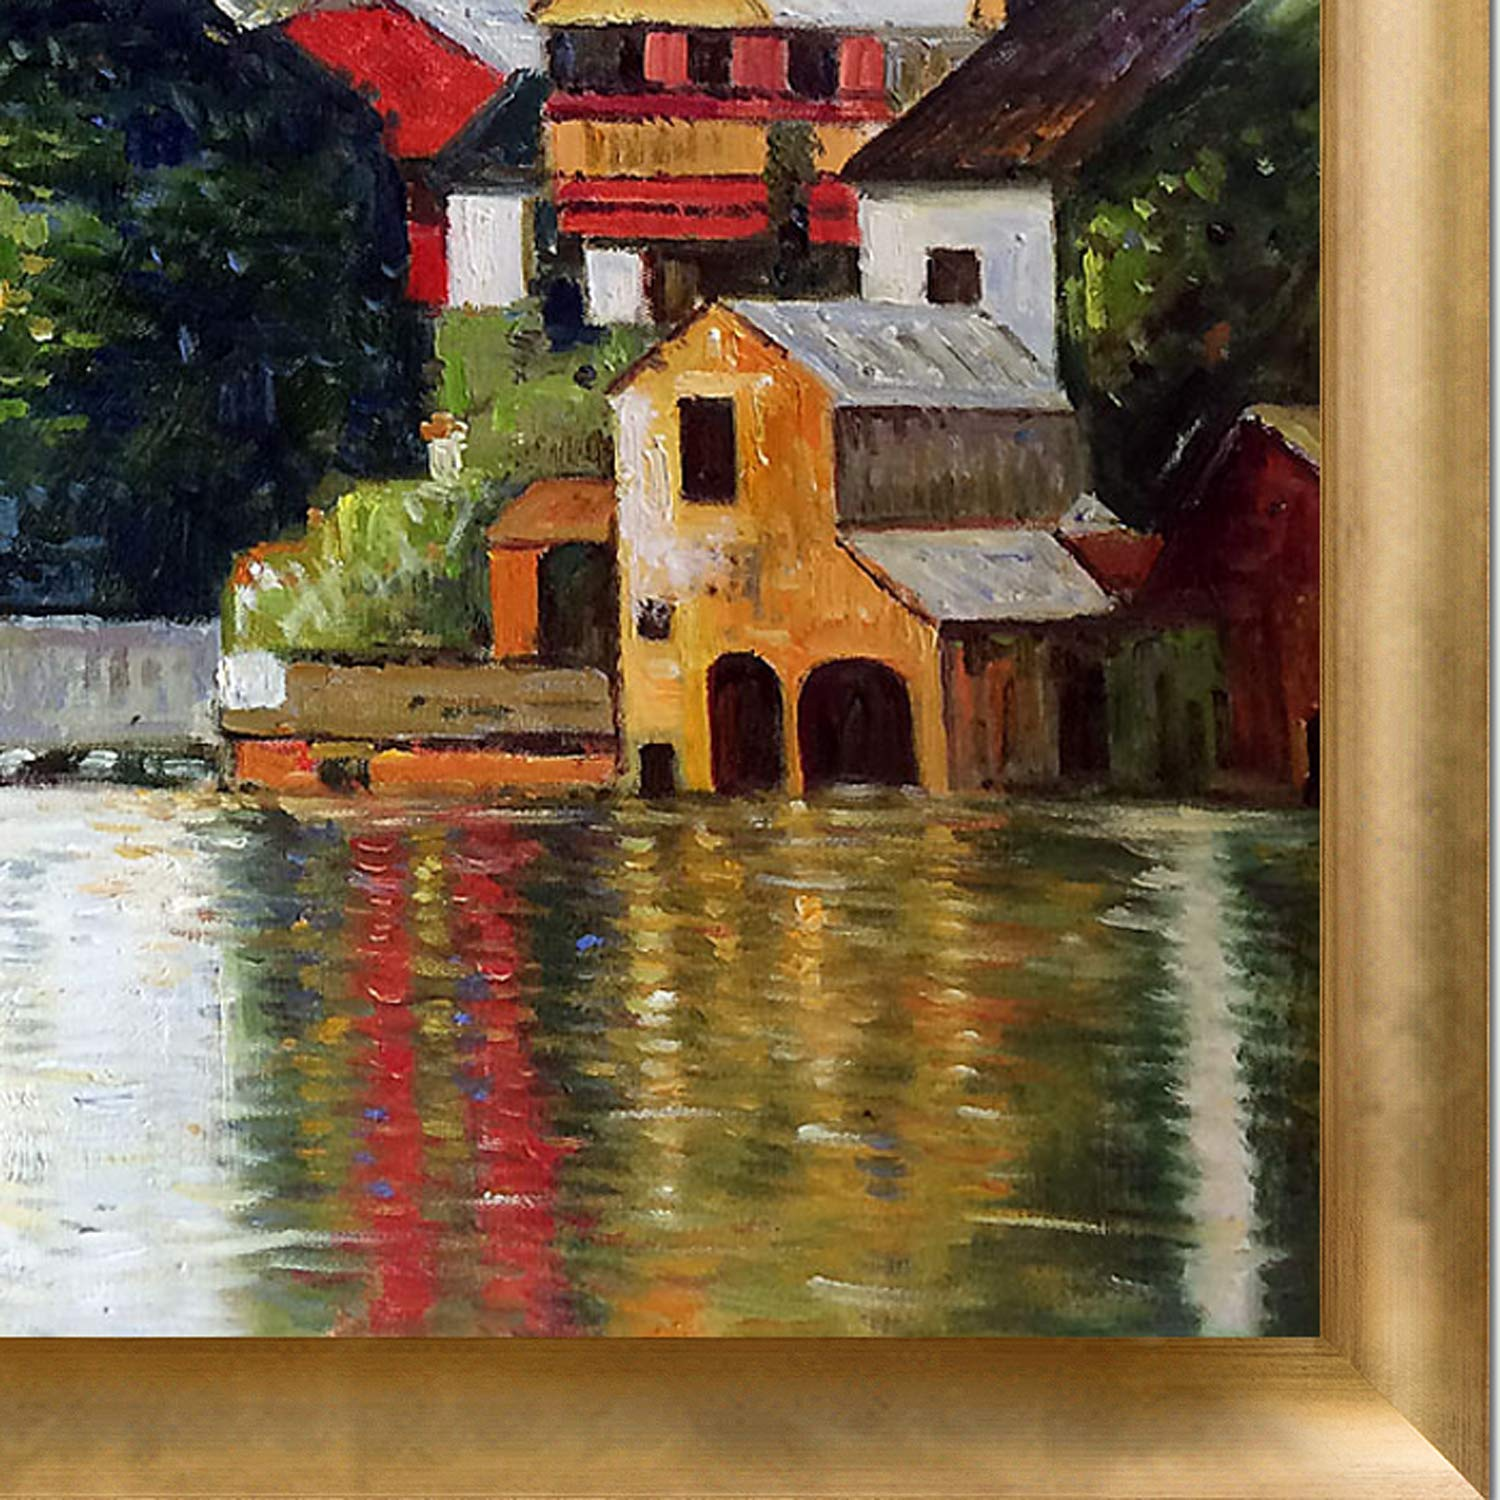 Multi-Color 27 x 23 La Pastiche Church in Unterach on The Attersee with Gold Luminoso Framed Oil Painting